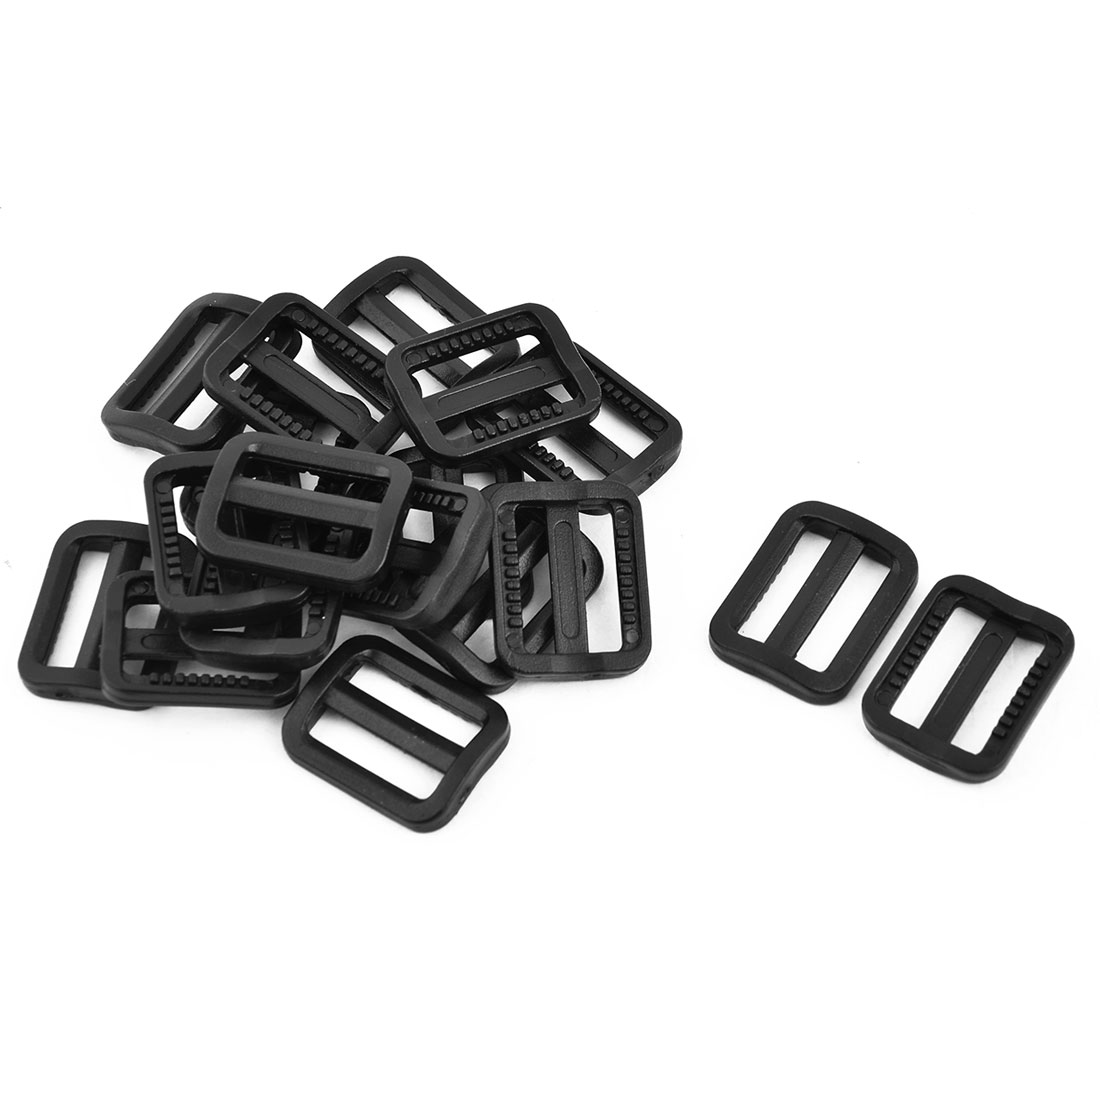 Backpack Luggage Bag Belt Plastic Adjustive Rectangle Tri Glide Fastener Buckle 18pcs